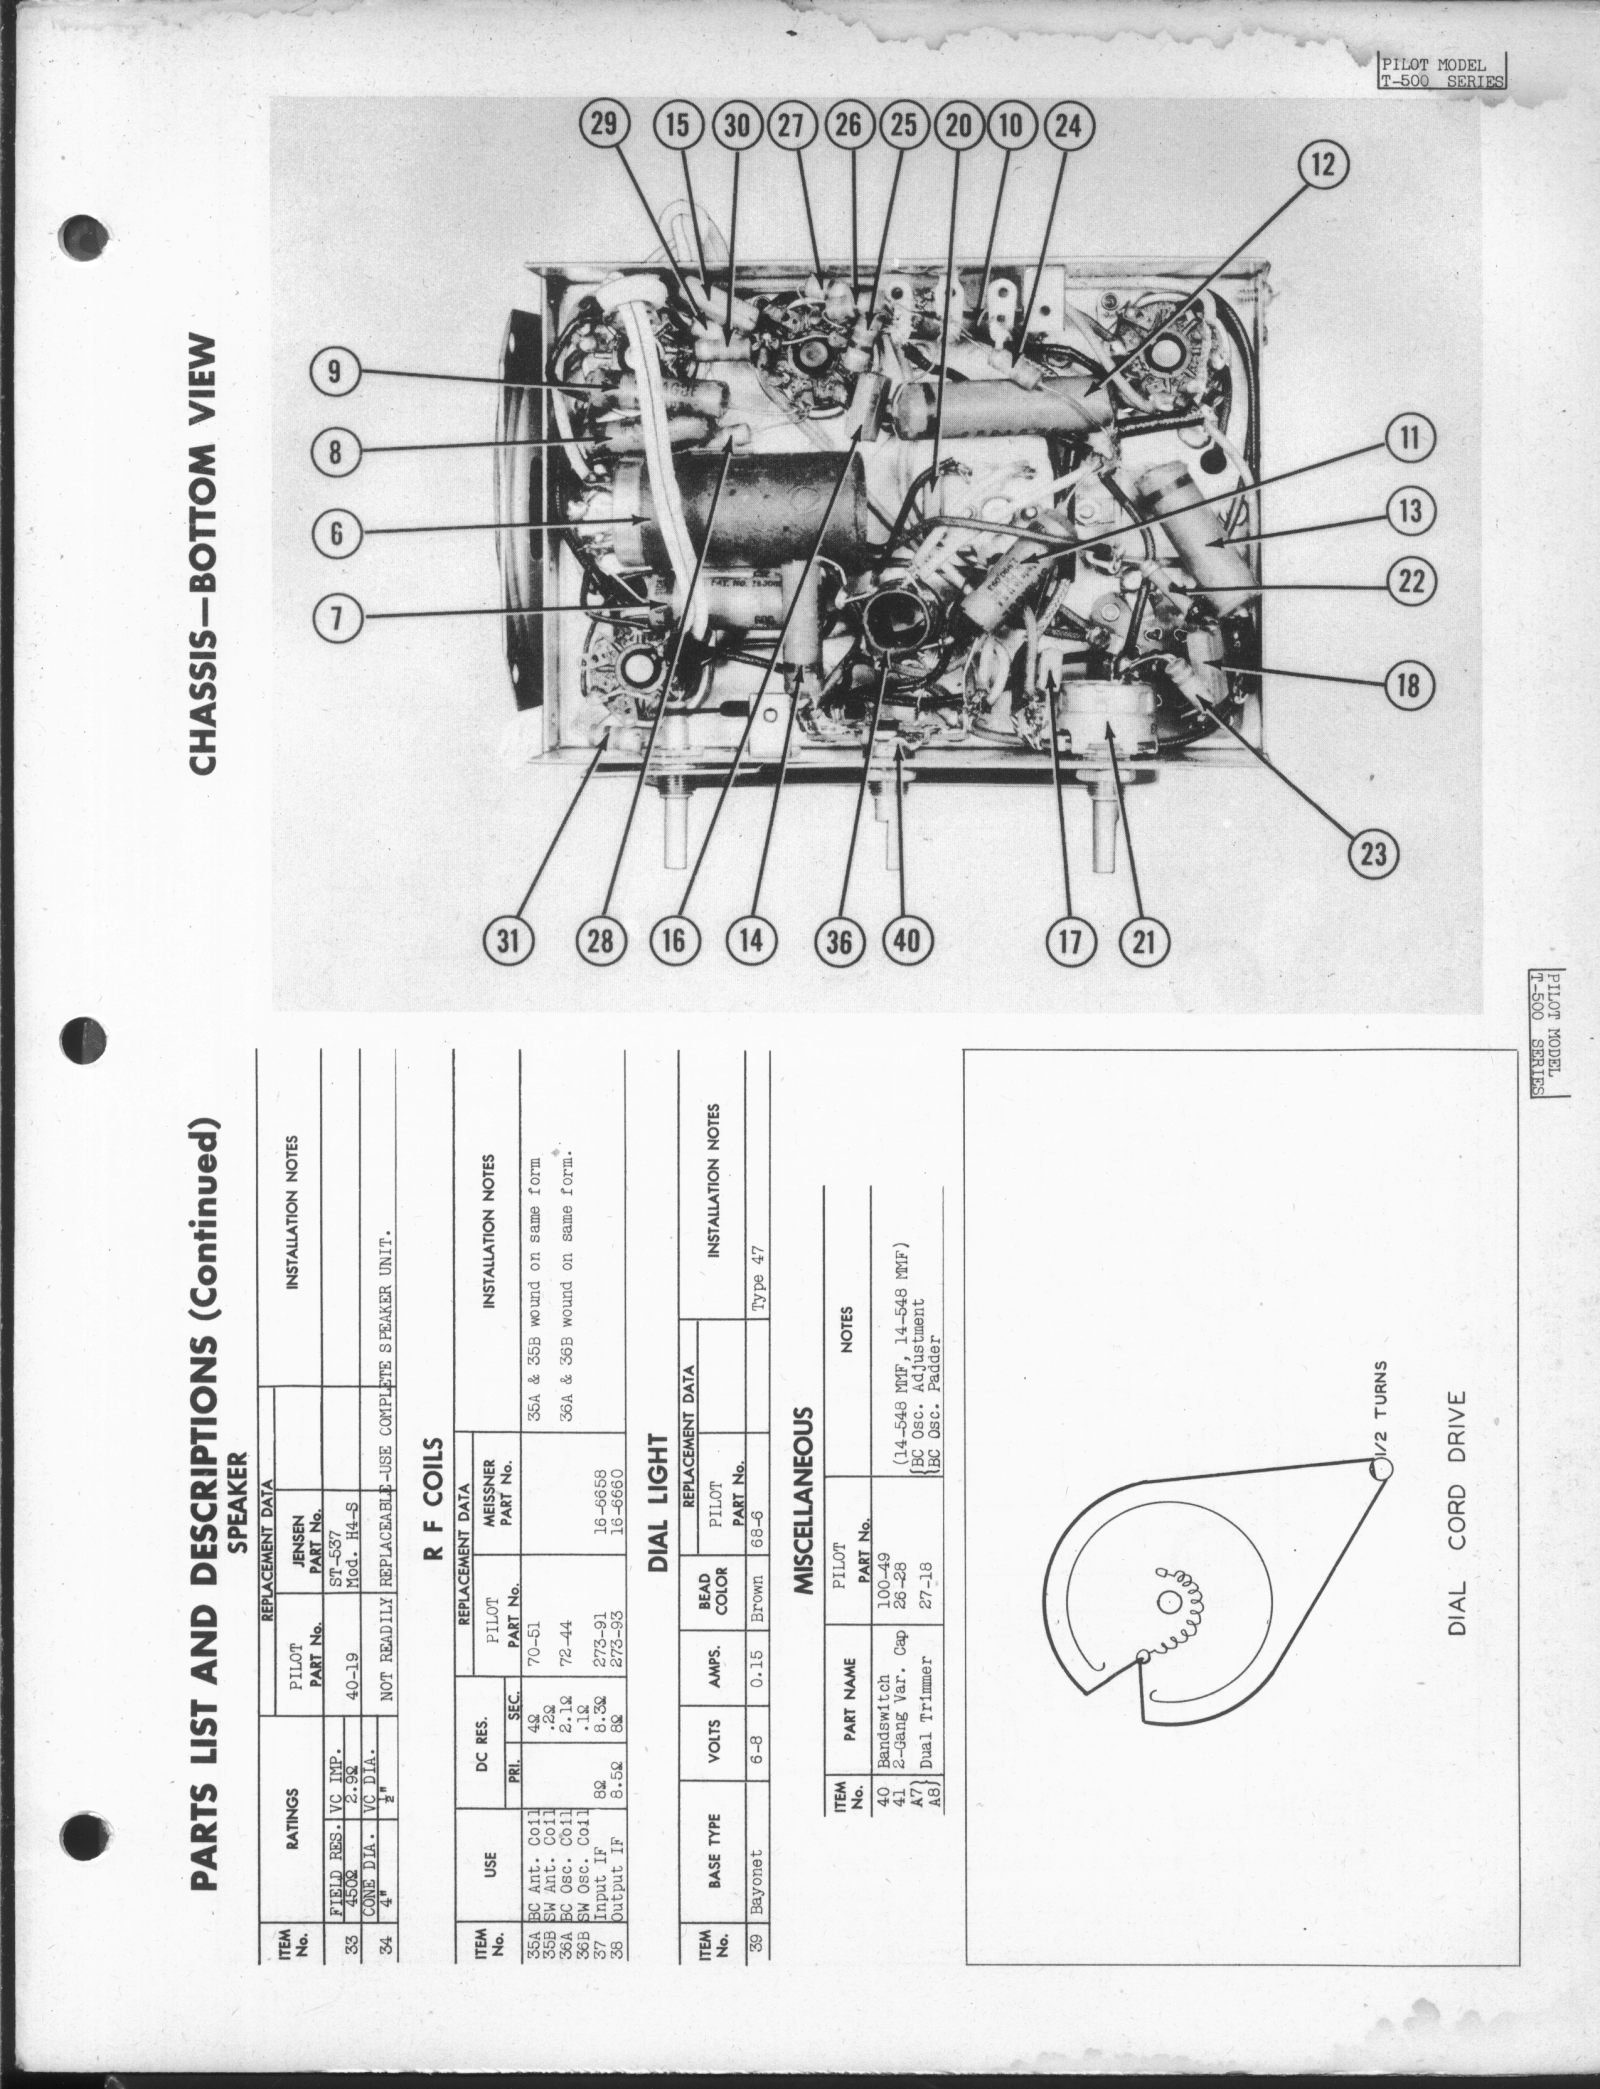 Restauration Of A Pilot T500 Tuned Radio Frequency Trf Receiver Circuit Diagram Figure 51 Click On One The Pictures To Download High Resolution Scan Here For Bottom View Sketch Tube Connections